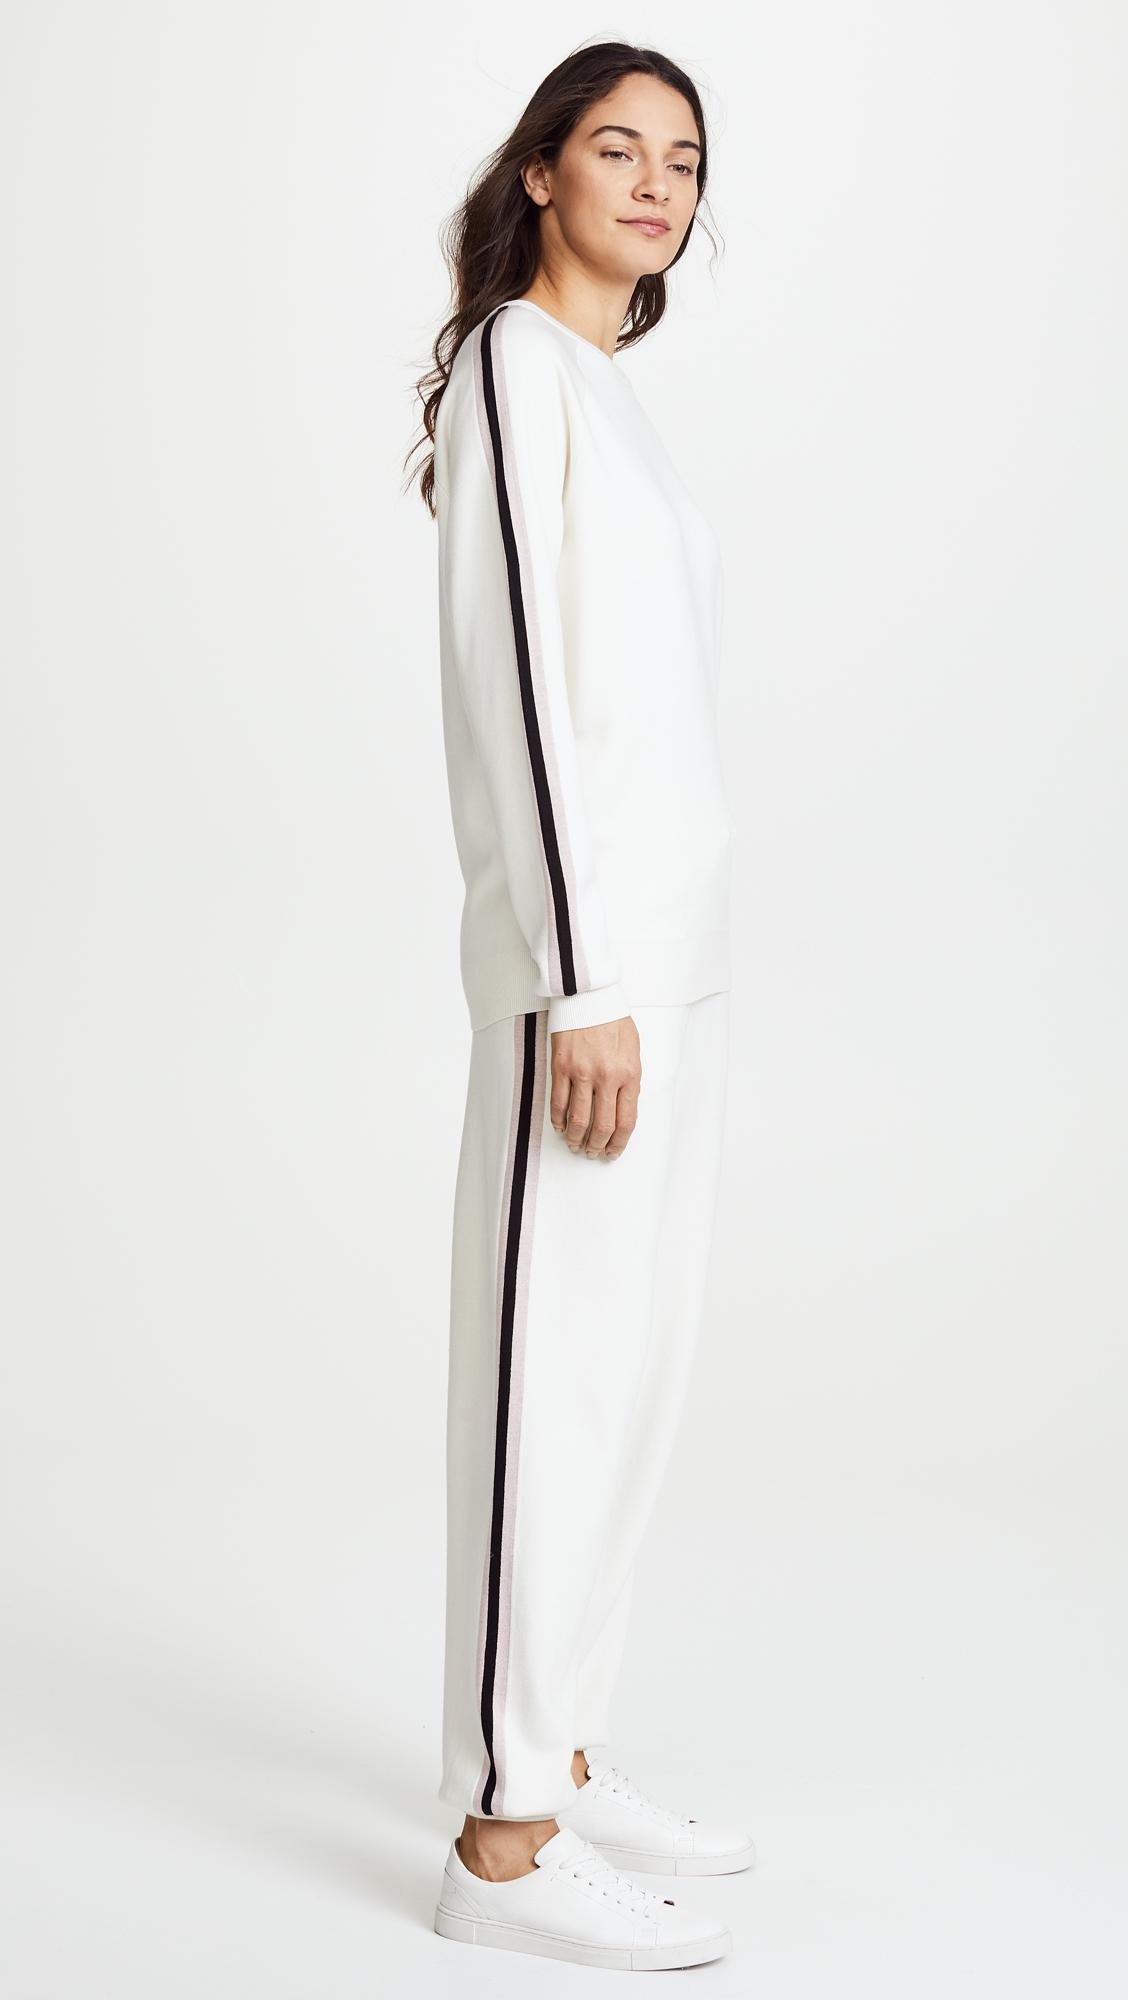 Missy Moscow Striped Silk-blend Sweatshirt And Track Pants Set - Ivory Olivia Von Halle FOuaukKbGc